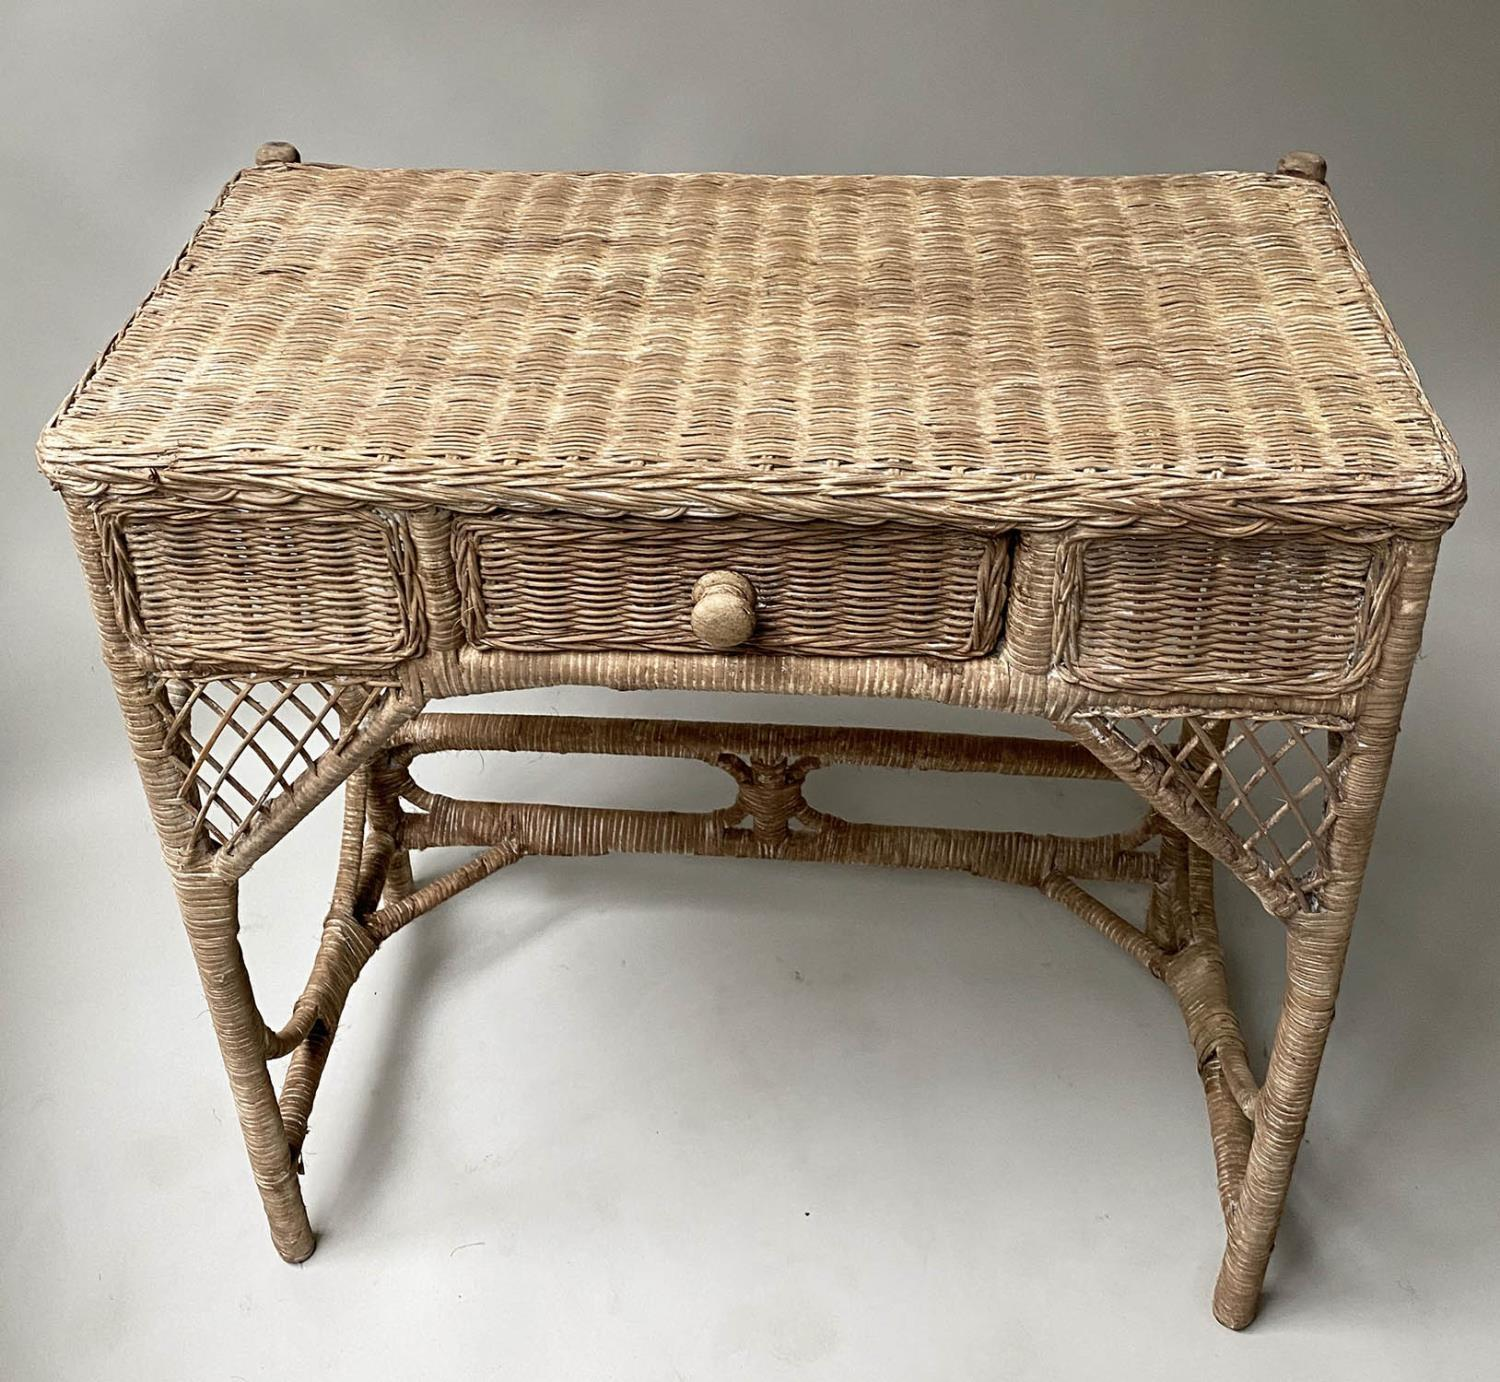 CONSOLE/HALL TABLE, vintage rattan and cane woven, with frieze drawer, 76cm W x 77cm x 42cm. - Image 4 of 7